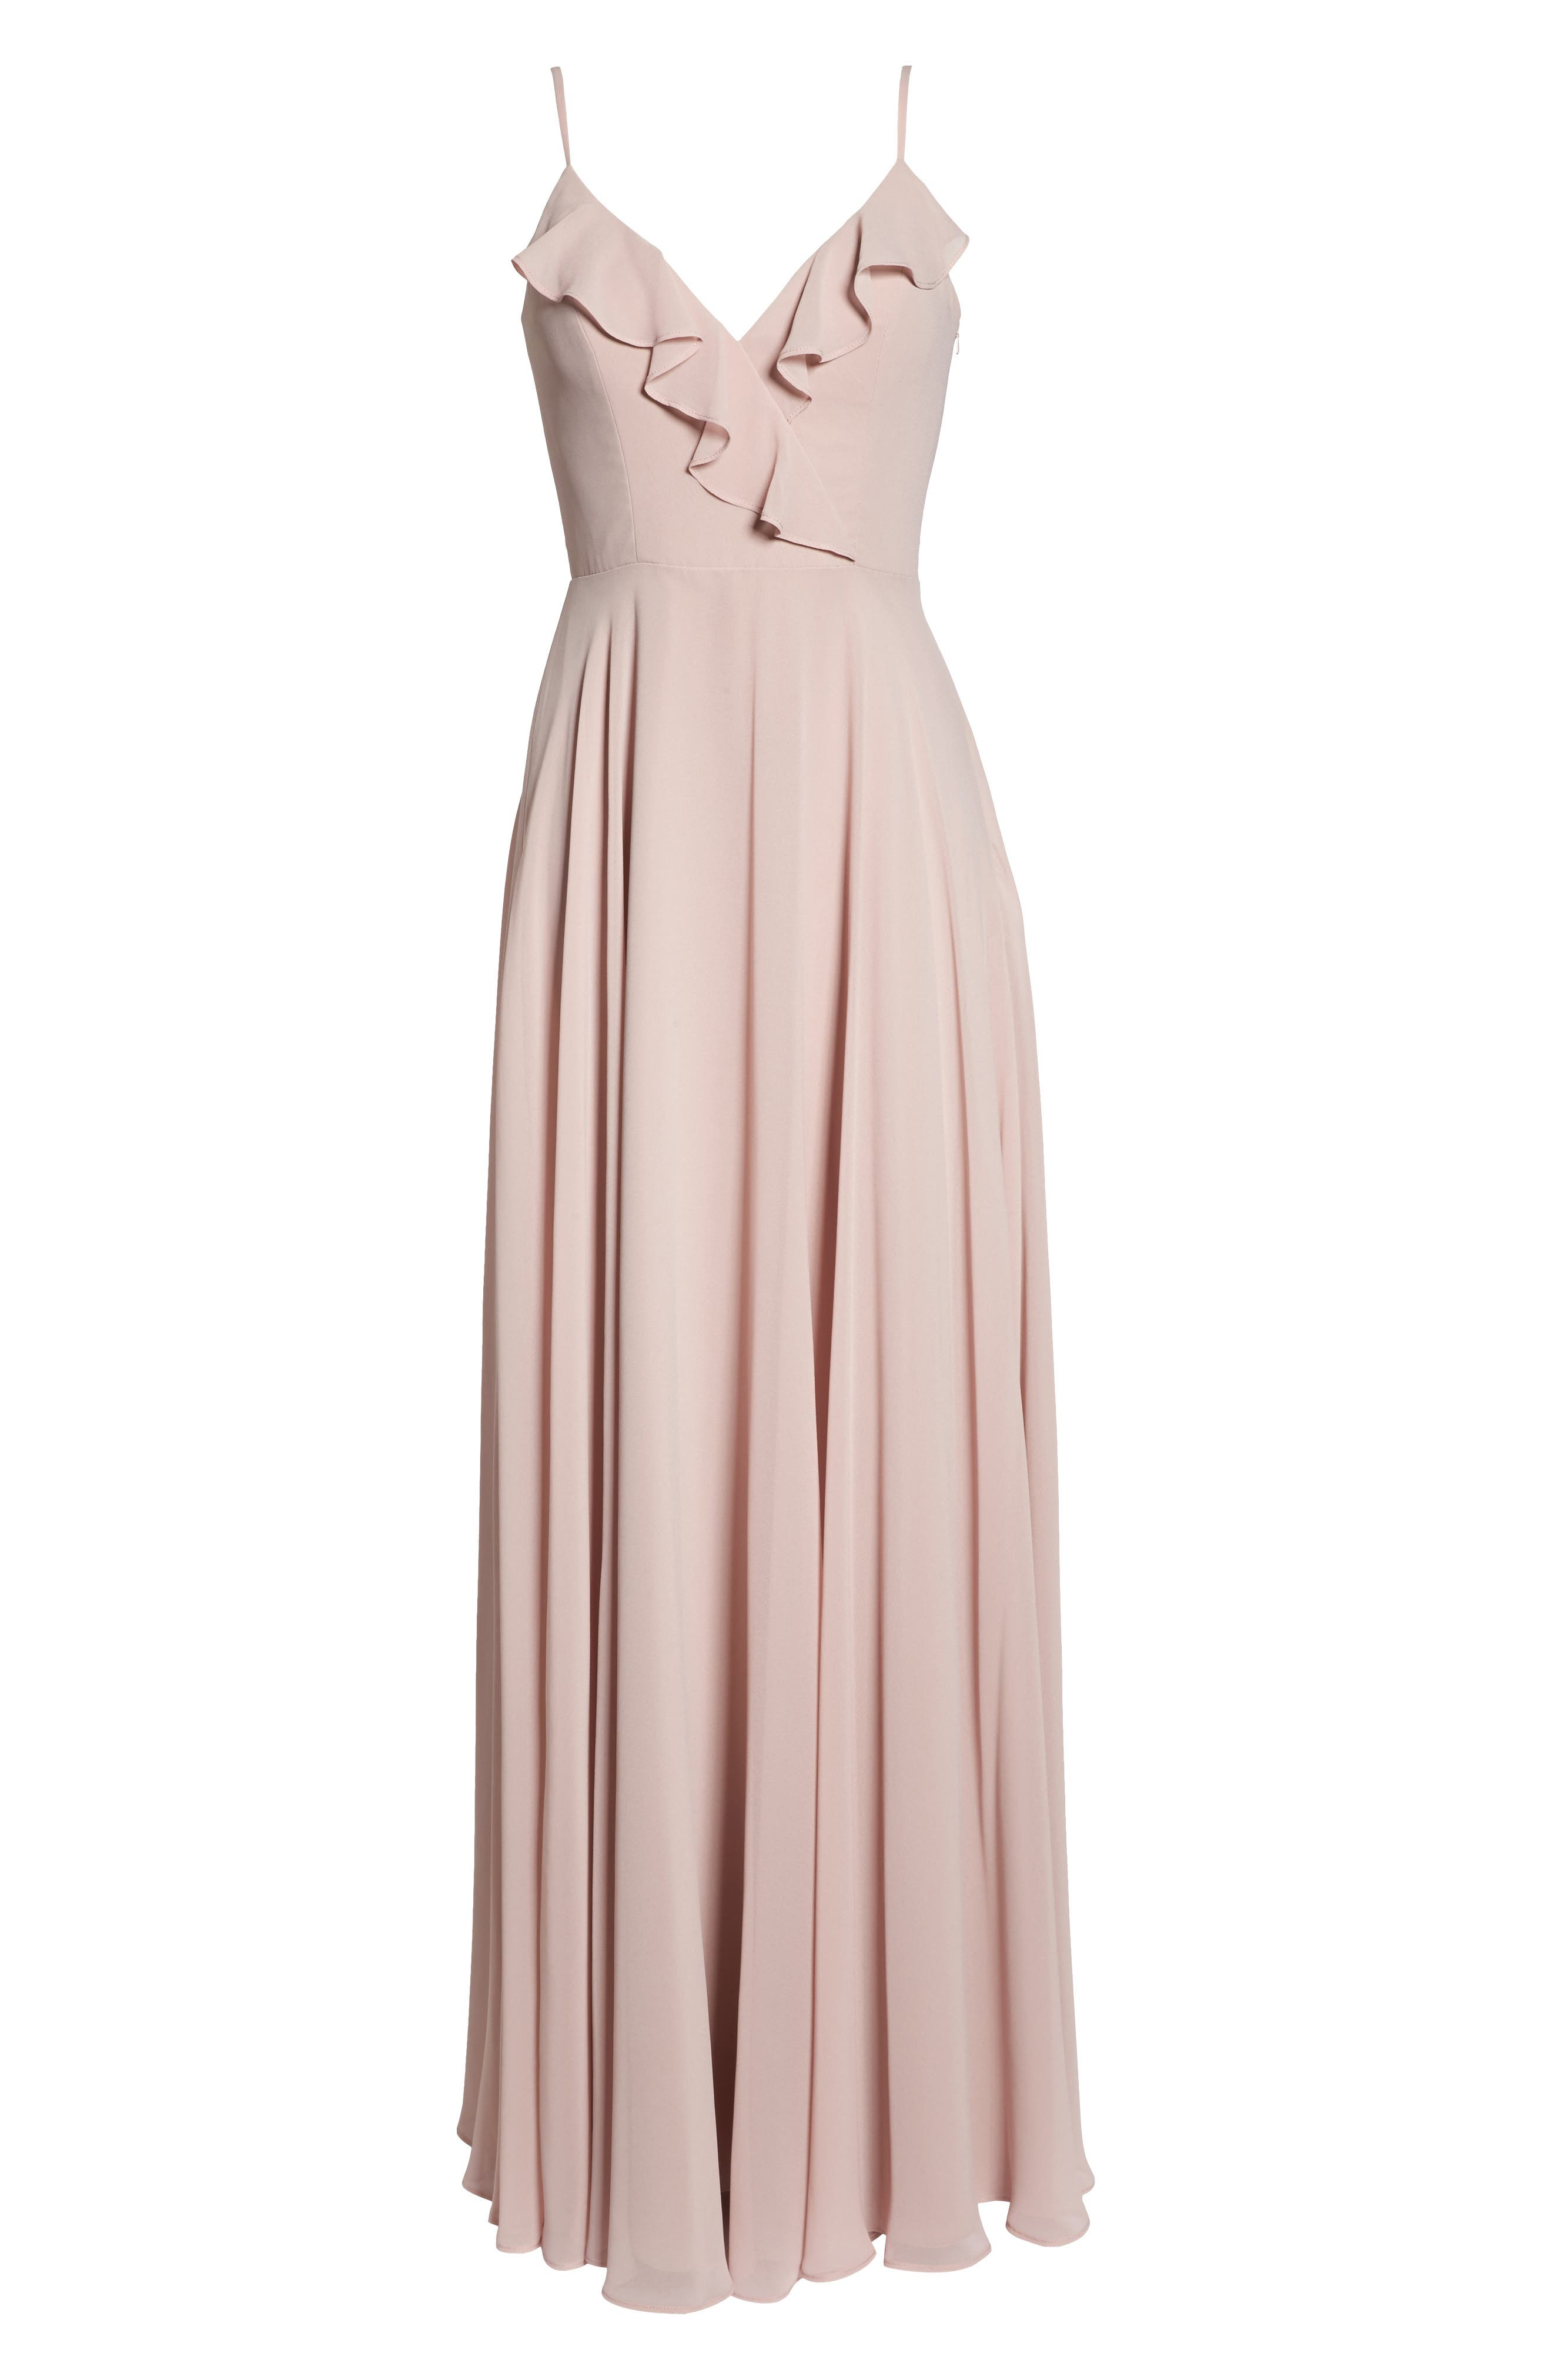 HAYLEY PAIGE OCCASIONS, Ruffle Chiffon Gown, Alternate thumbnail 7, color, DUSTY ROSE